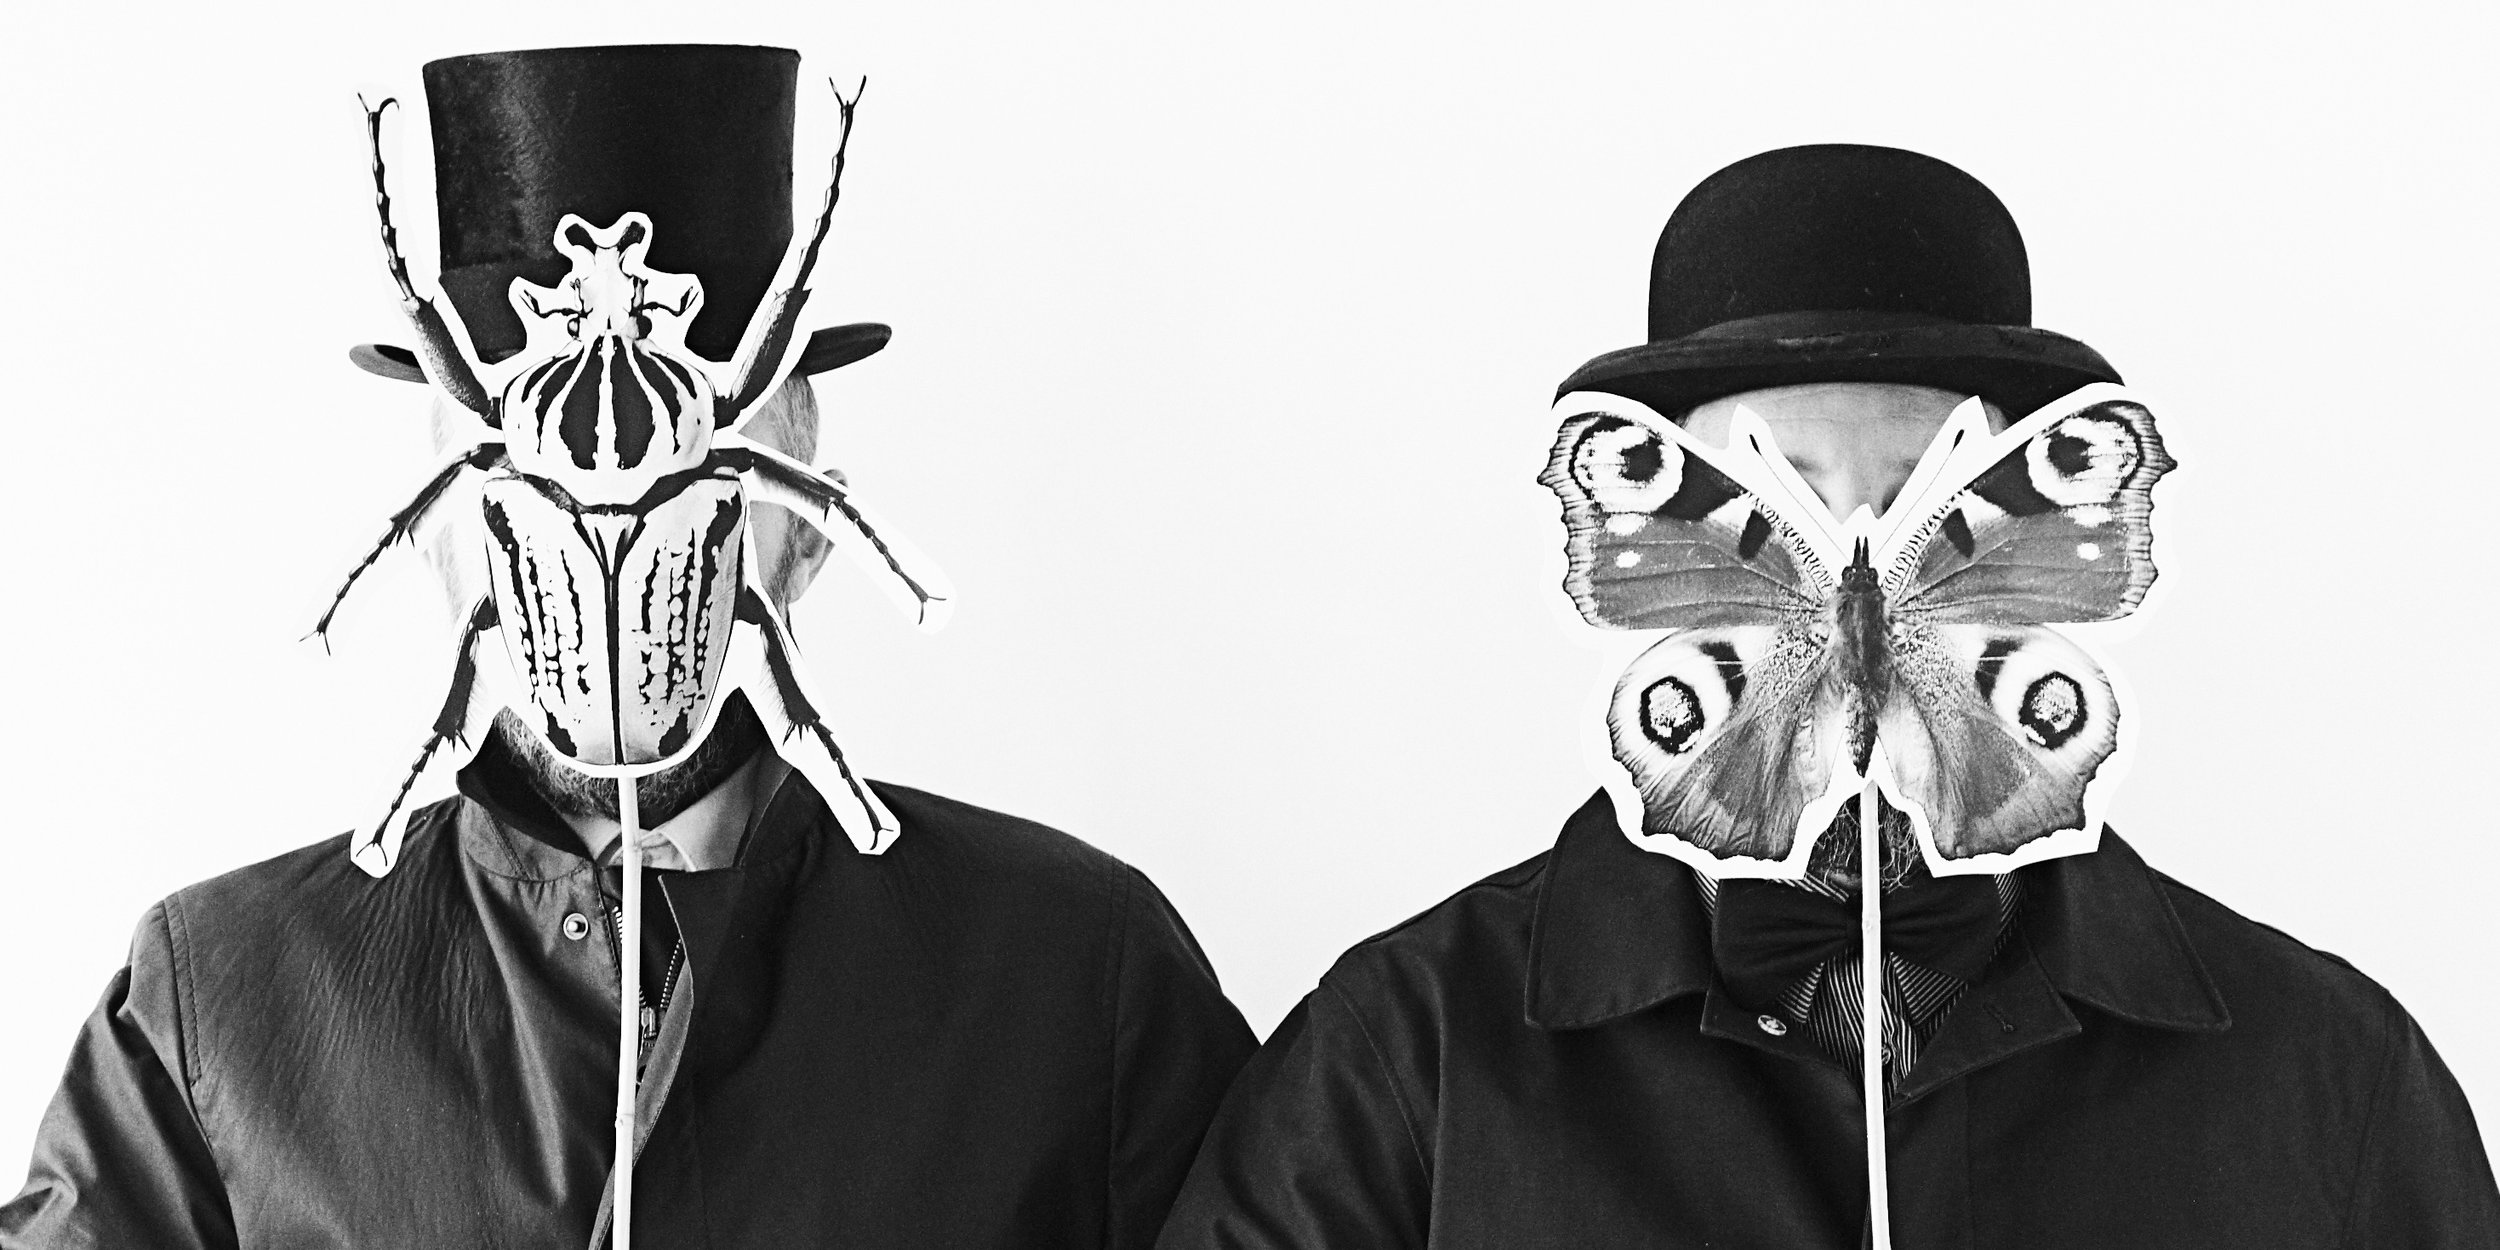 At hagedornhagen we have a passion for creeps and tiny winged creatures. Black and white portrait of photograpers, Mads Hagedorn-Olsen and Anders Morell.